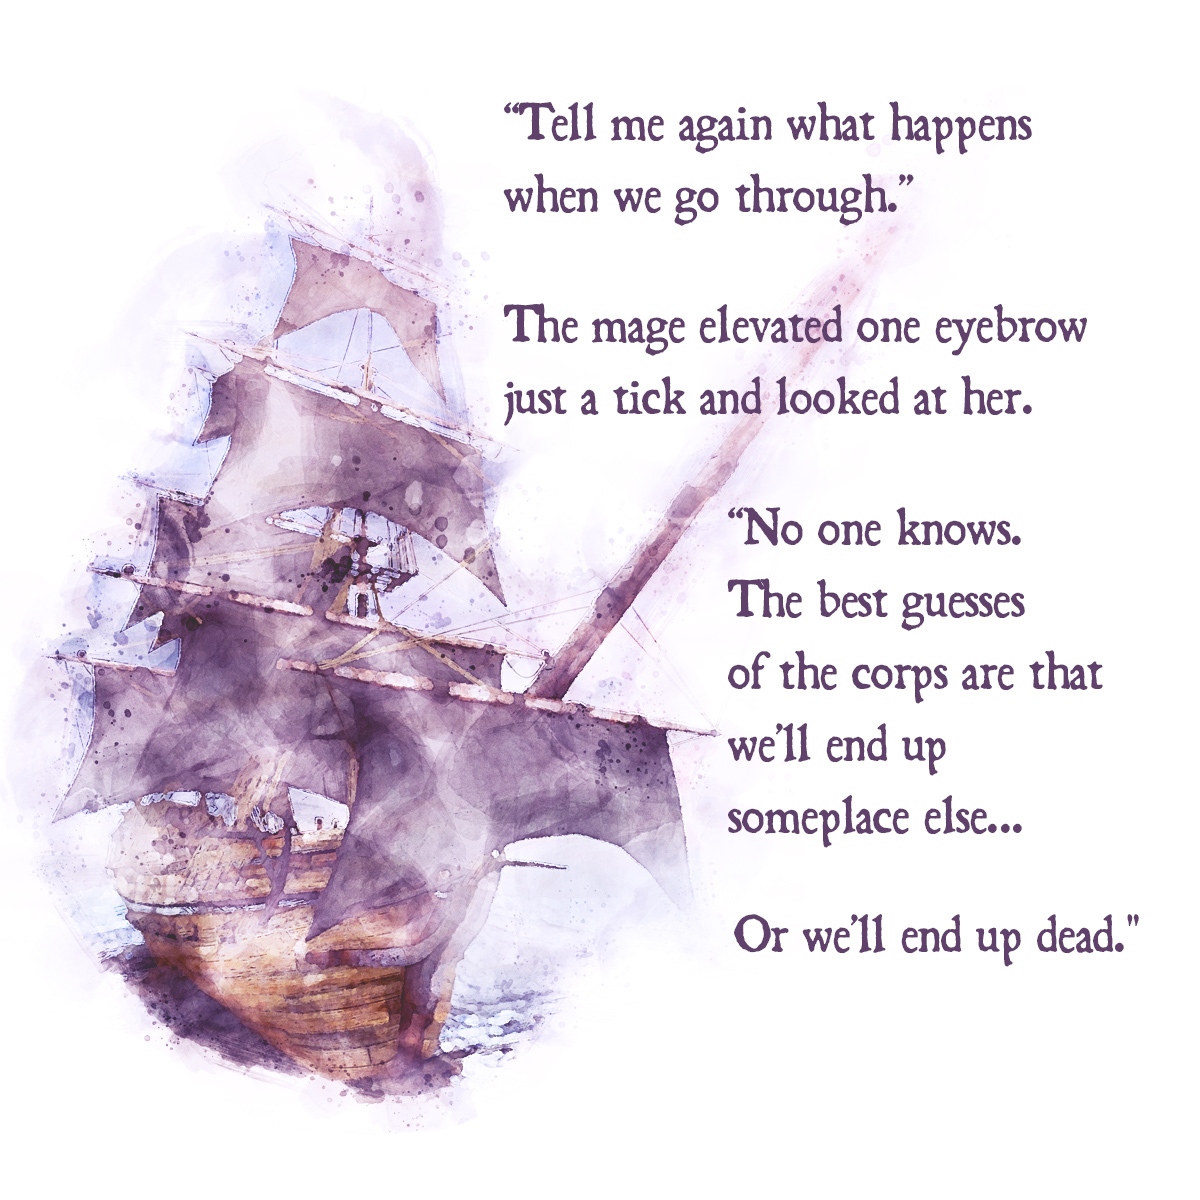 watercolor render of sailing ship with text